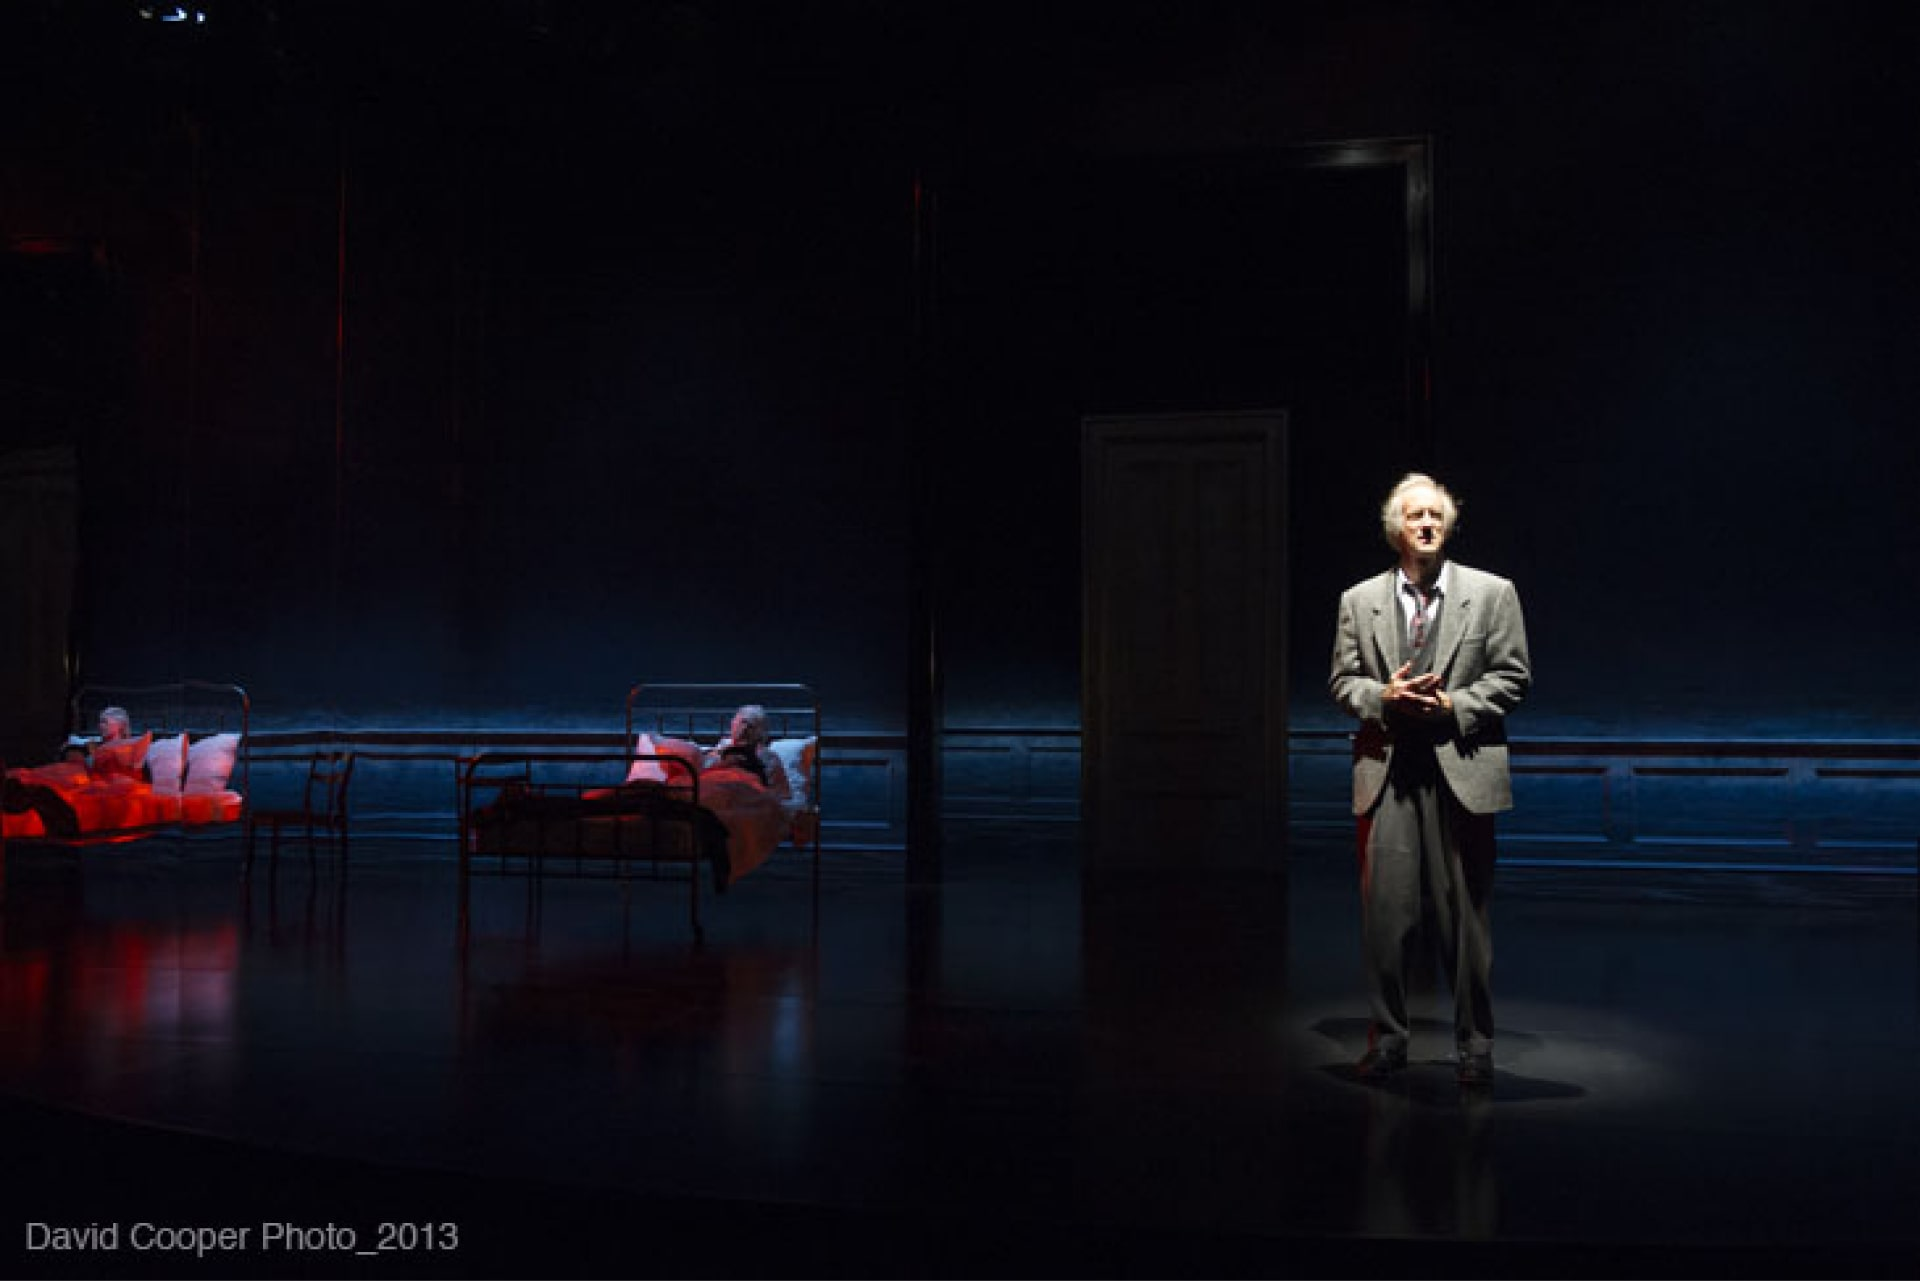 Man in grey suit stands in pool of light while woman in red-lit bed is reflected in mirror wall behind.